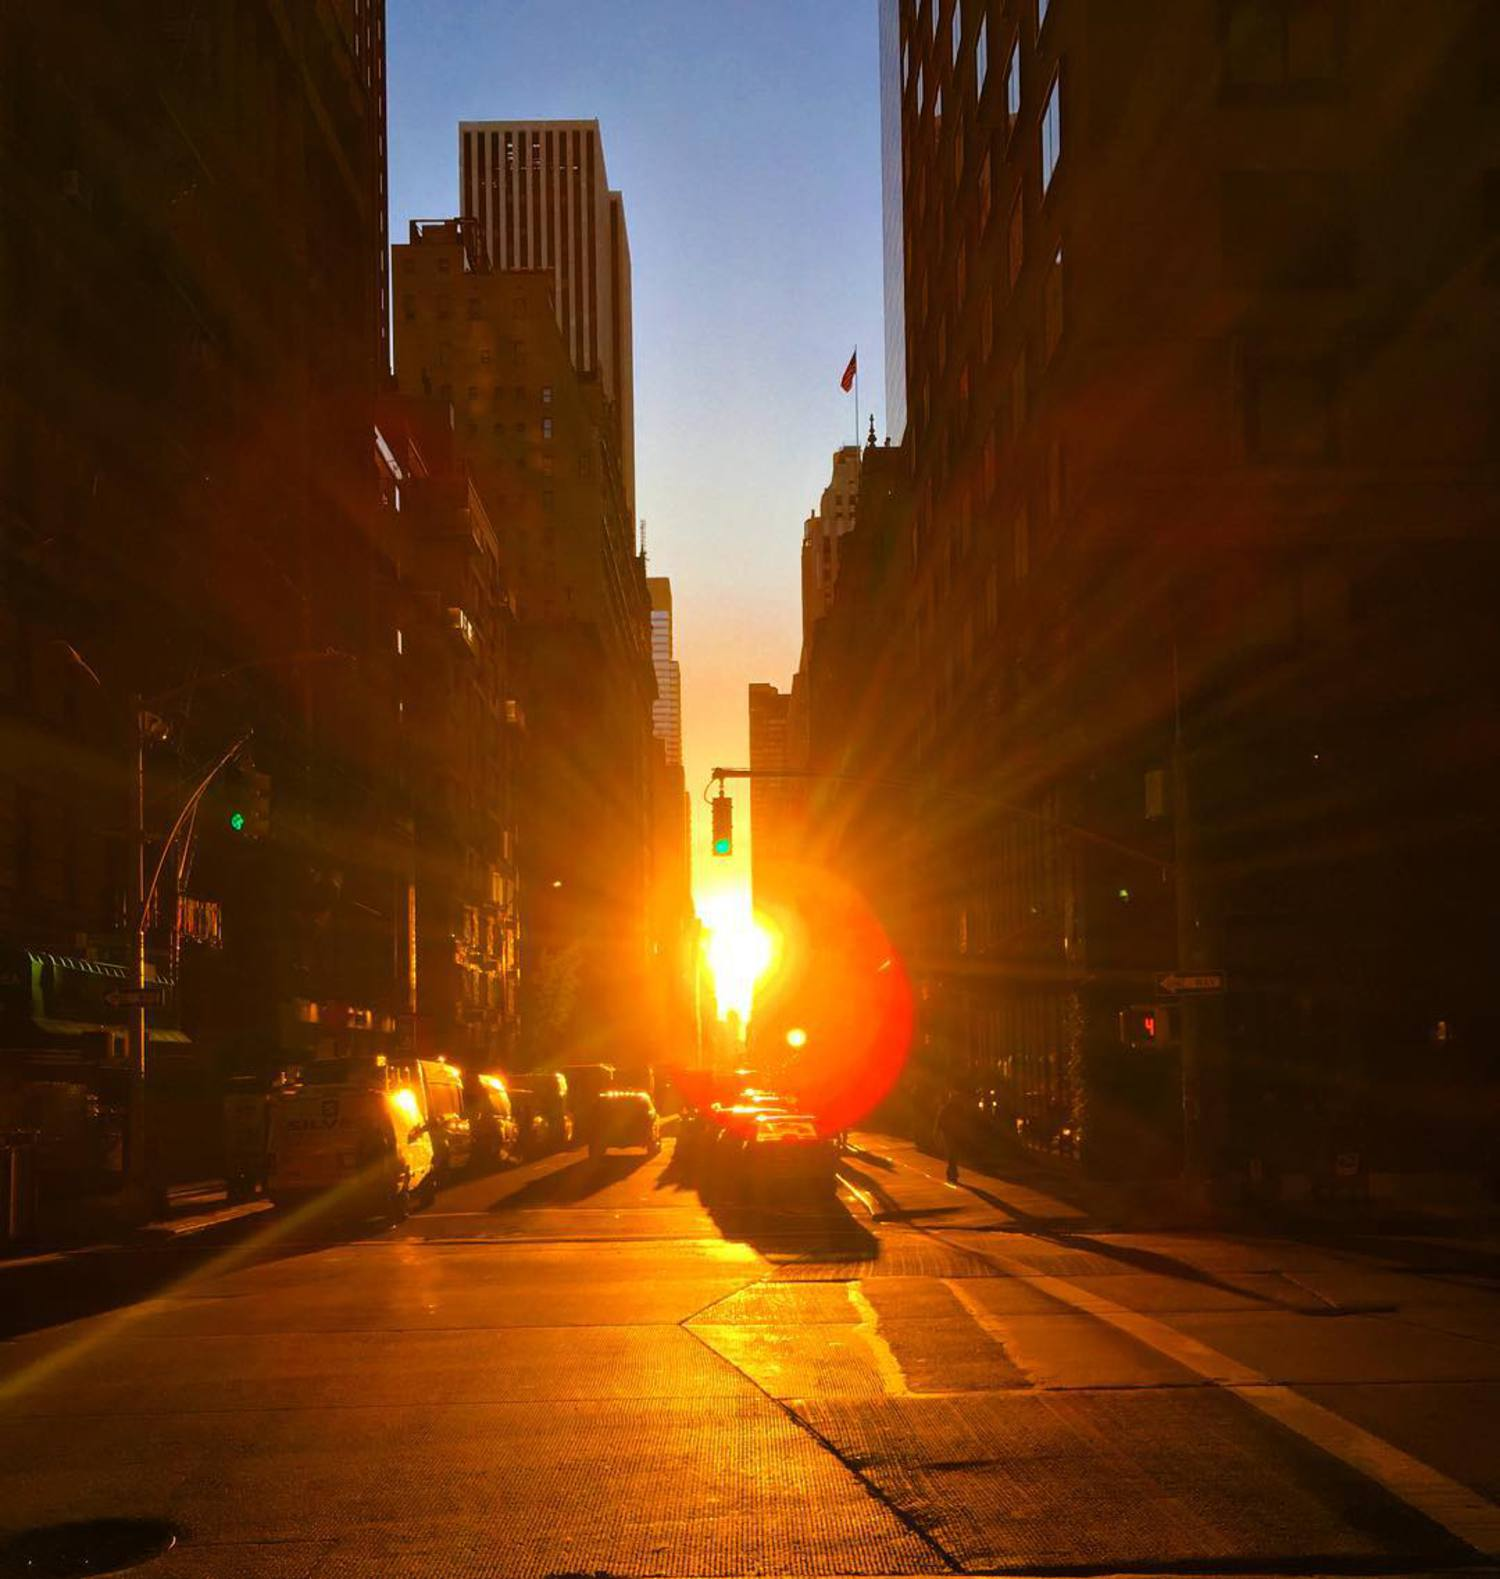 Sunburst in Manhattan. #GoodMorning 🌇